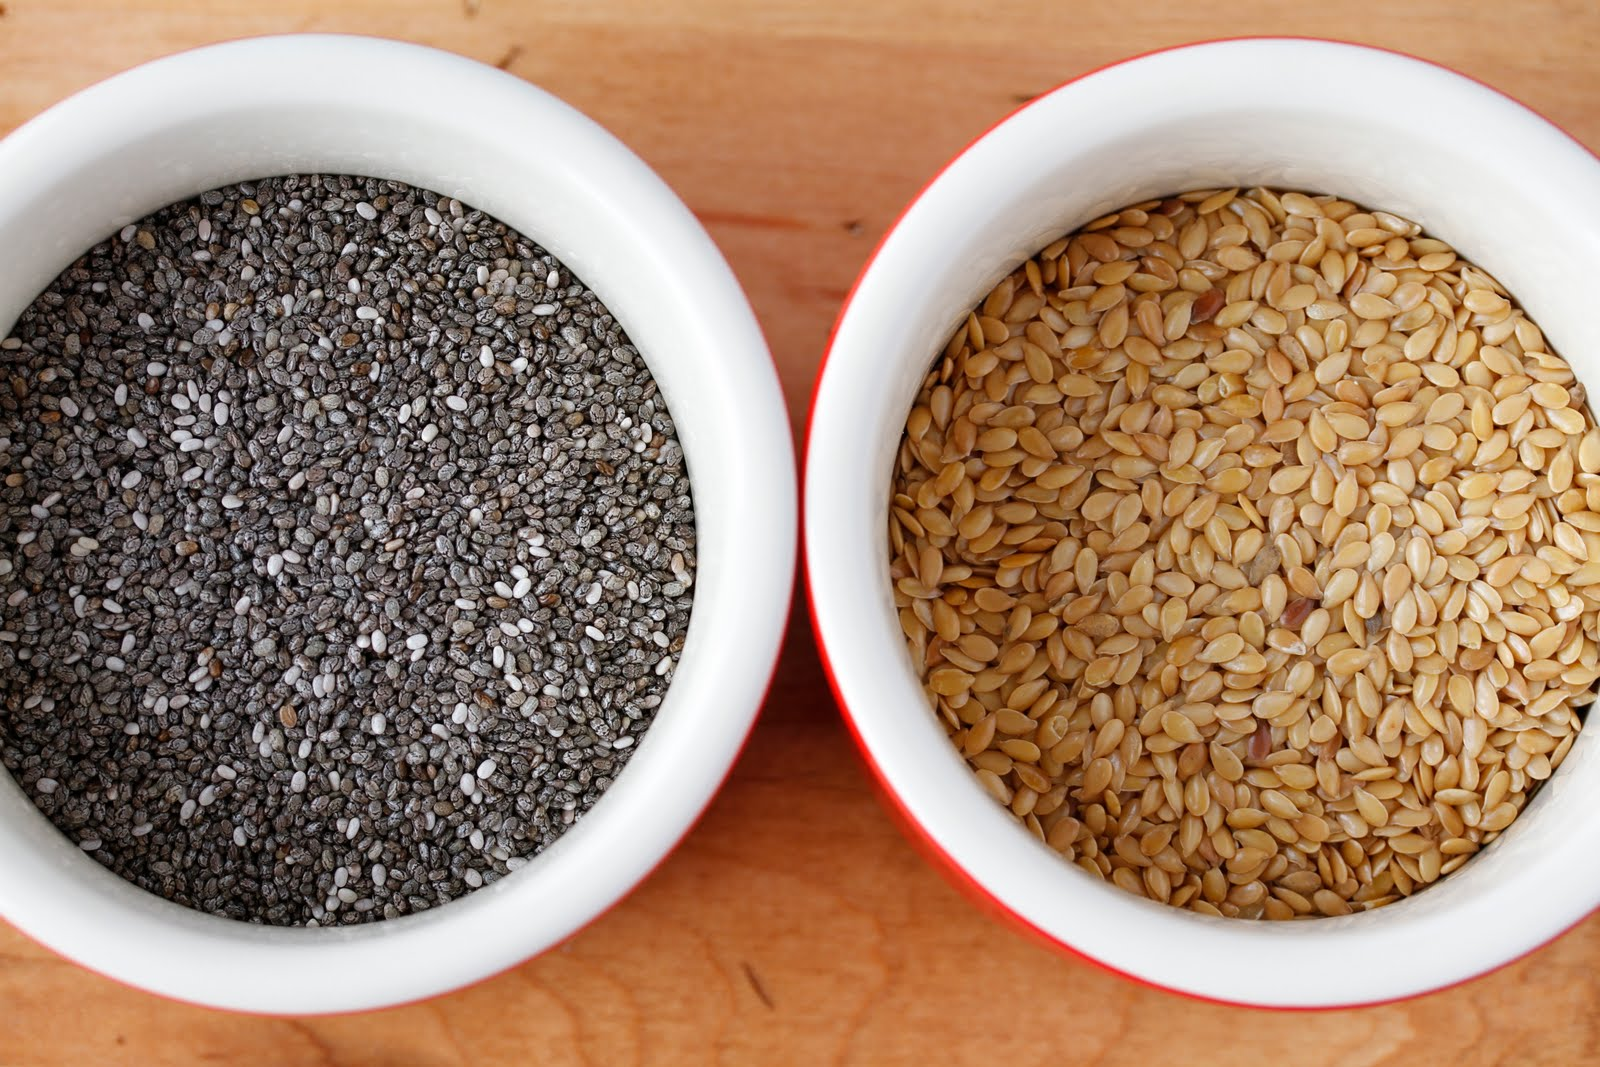 how to eat nigella seeds whole or ground